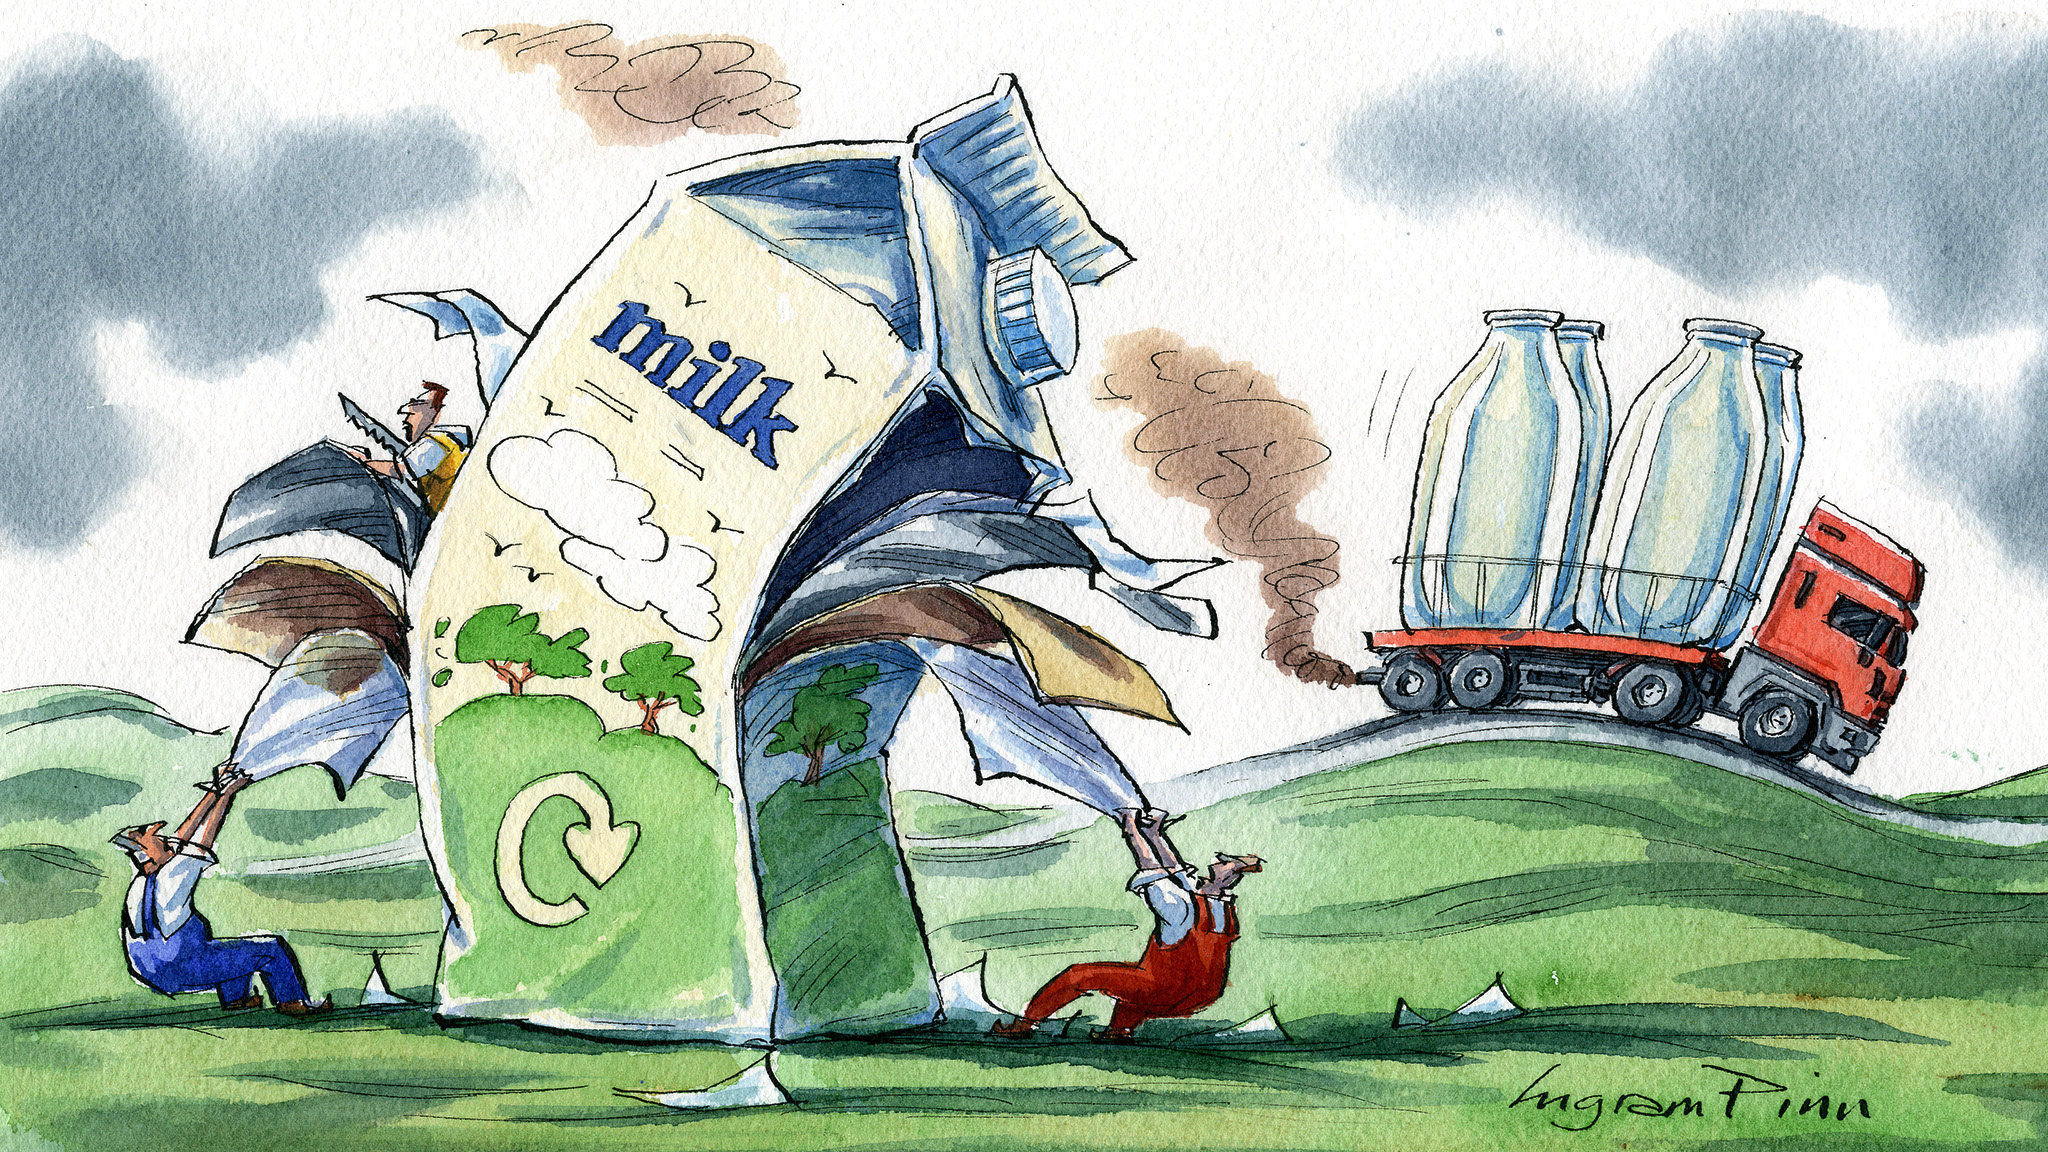 Invent a greener milk carton for the world